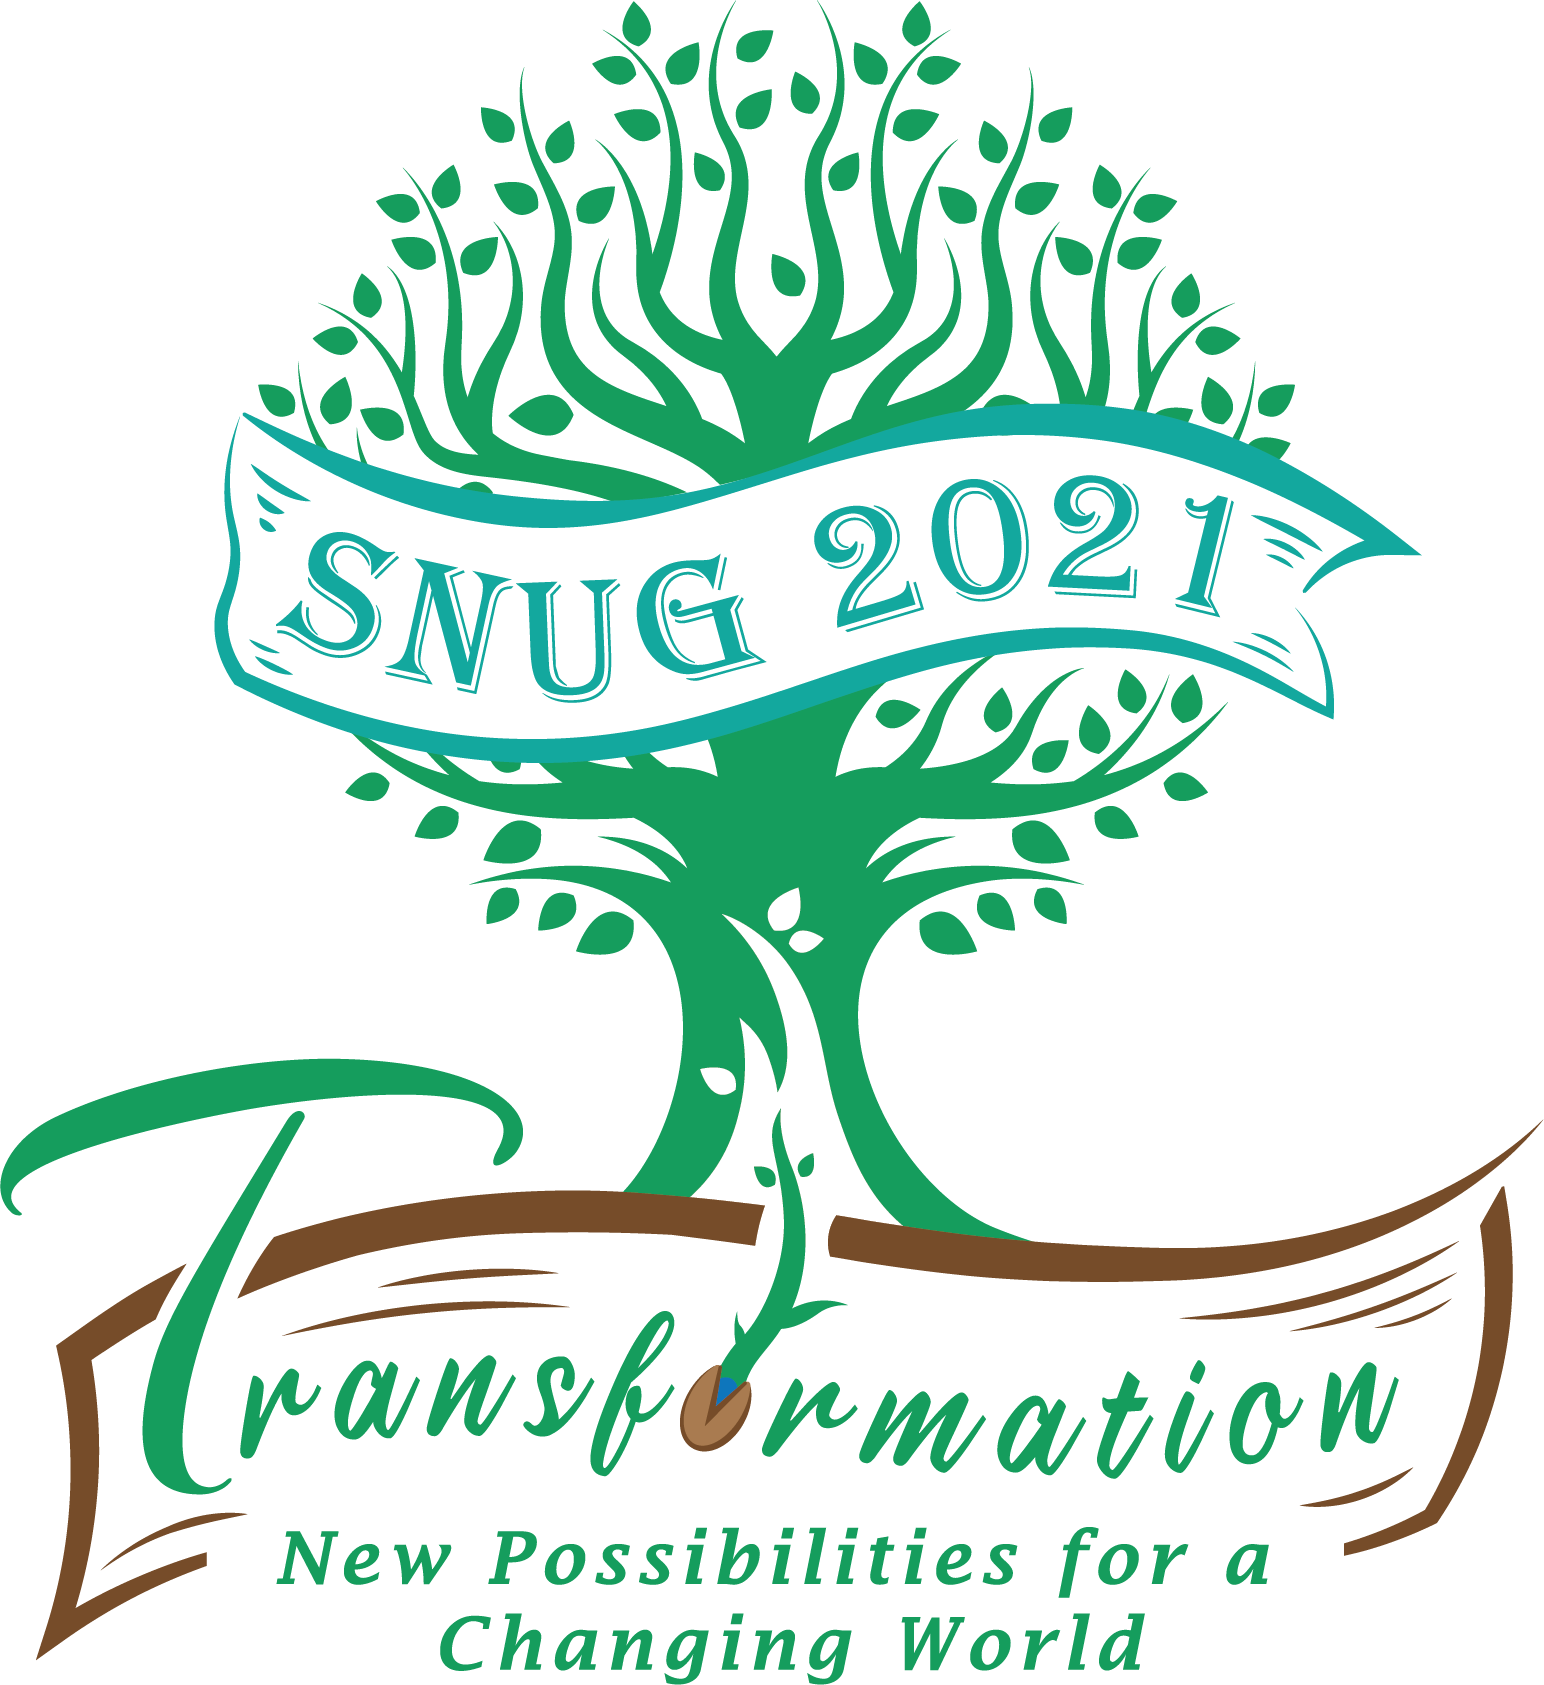 Letter From the SNUG Board: 2021 Annual SNUG Conference